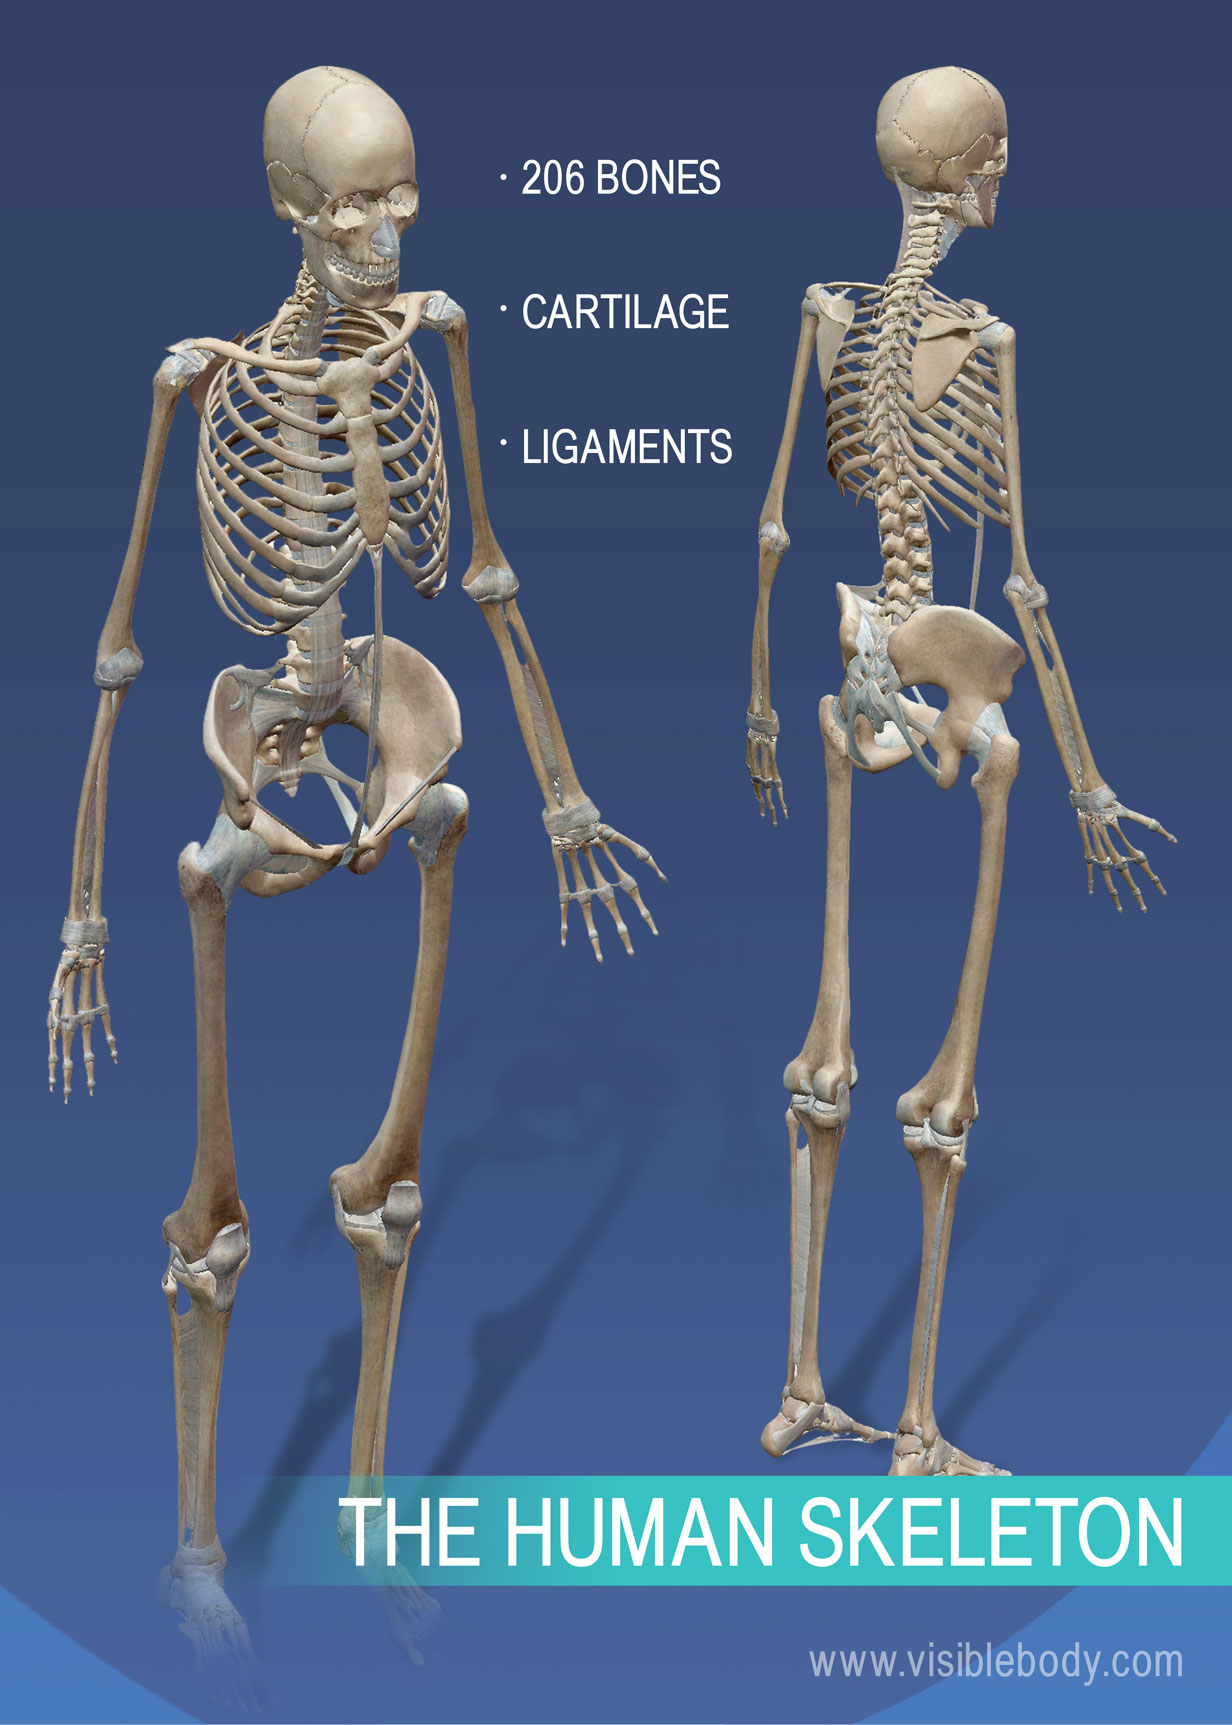 overview of the skeletal system View homework help - overview_of_the_skeletal_system_rpt from bio 235 at azusa pacific overview of the skeletal system lab report assistant exercise 1: bone shapes data table 1.